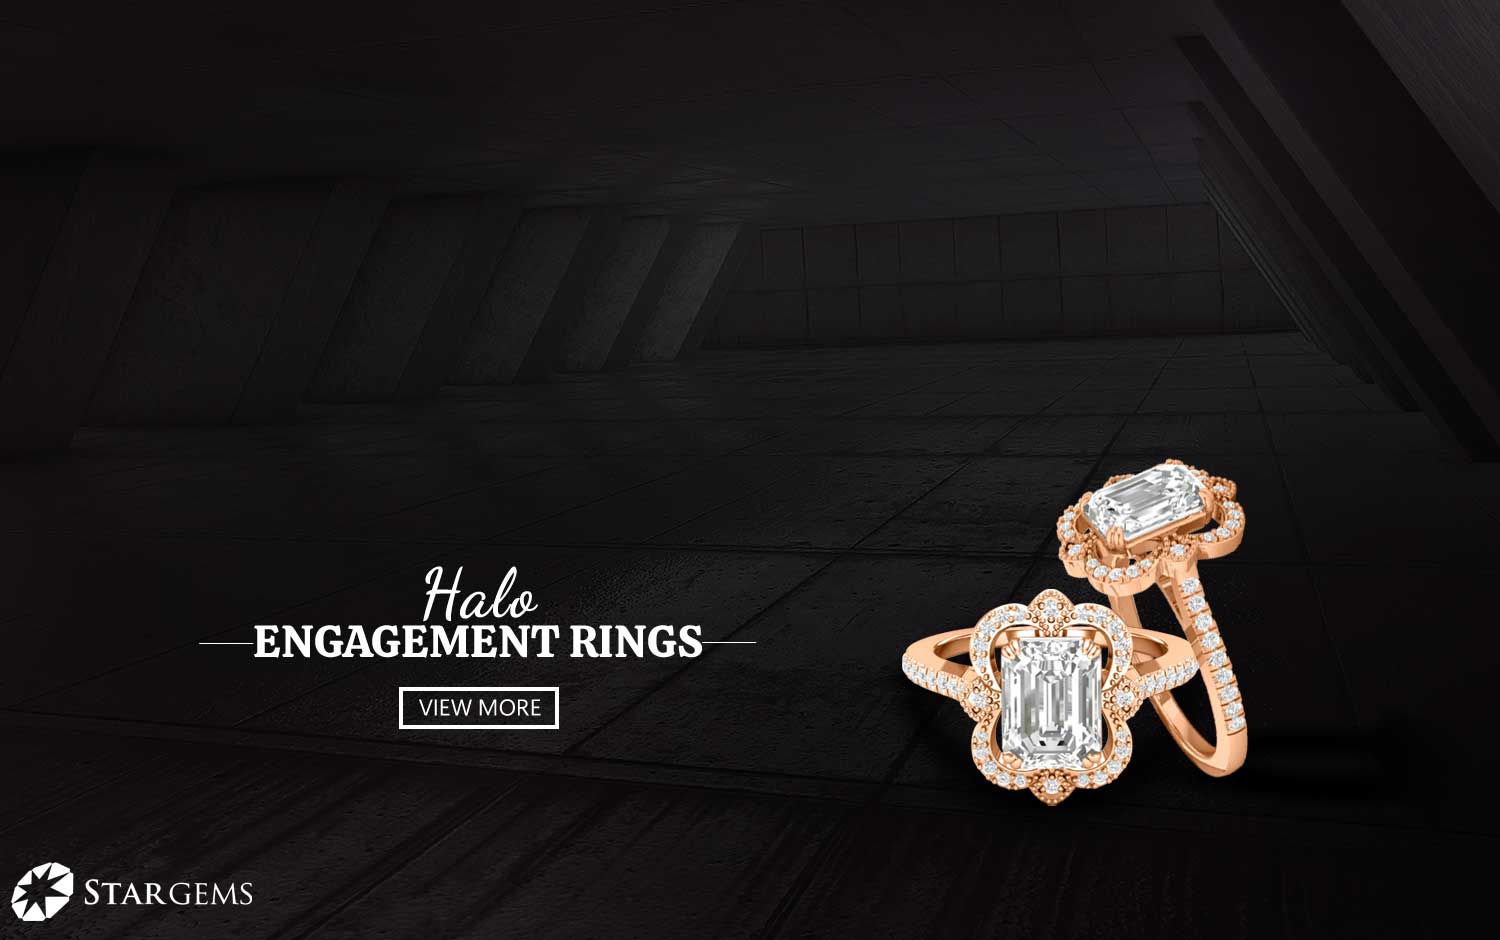 Halo Engagement Rings Available In Plymouth, MI